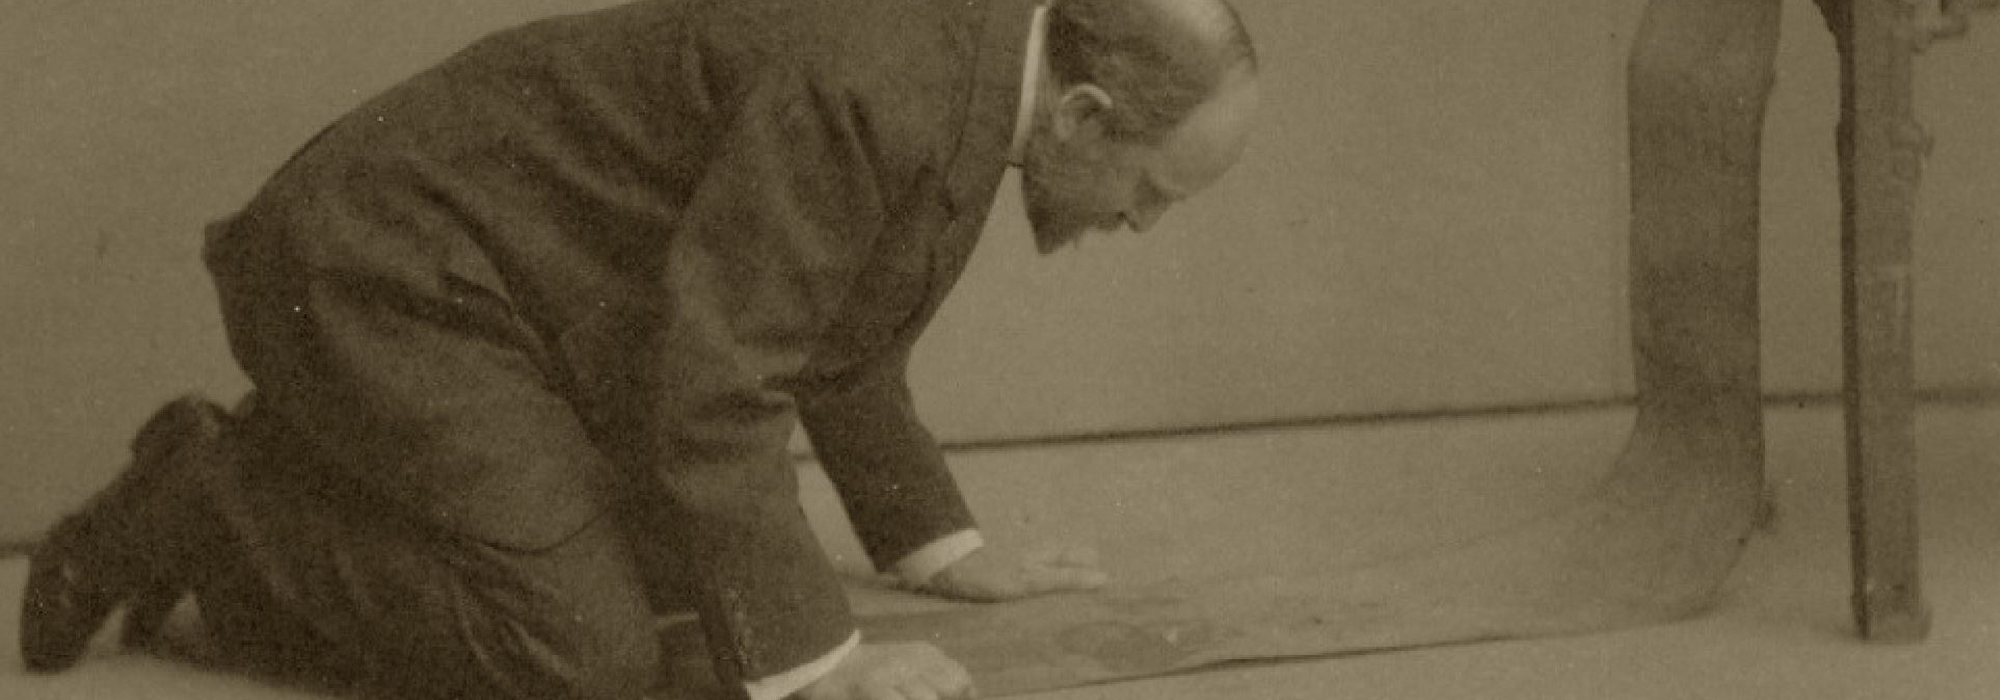 Photograph of Charles Lang Freer kneeling on the floor to examine a scroll, by Alvin Lang Coburn.